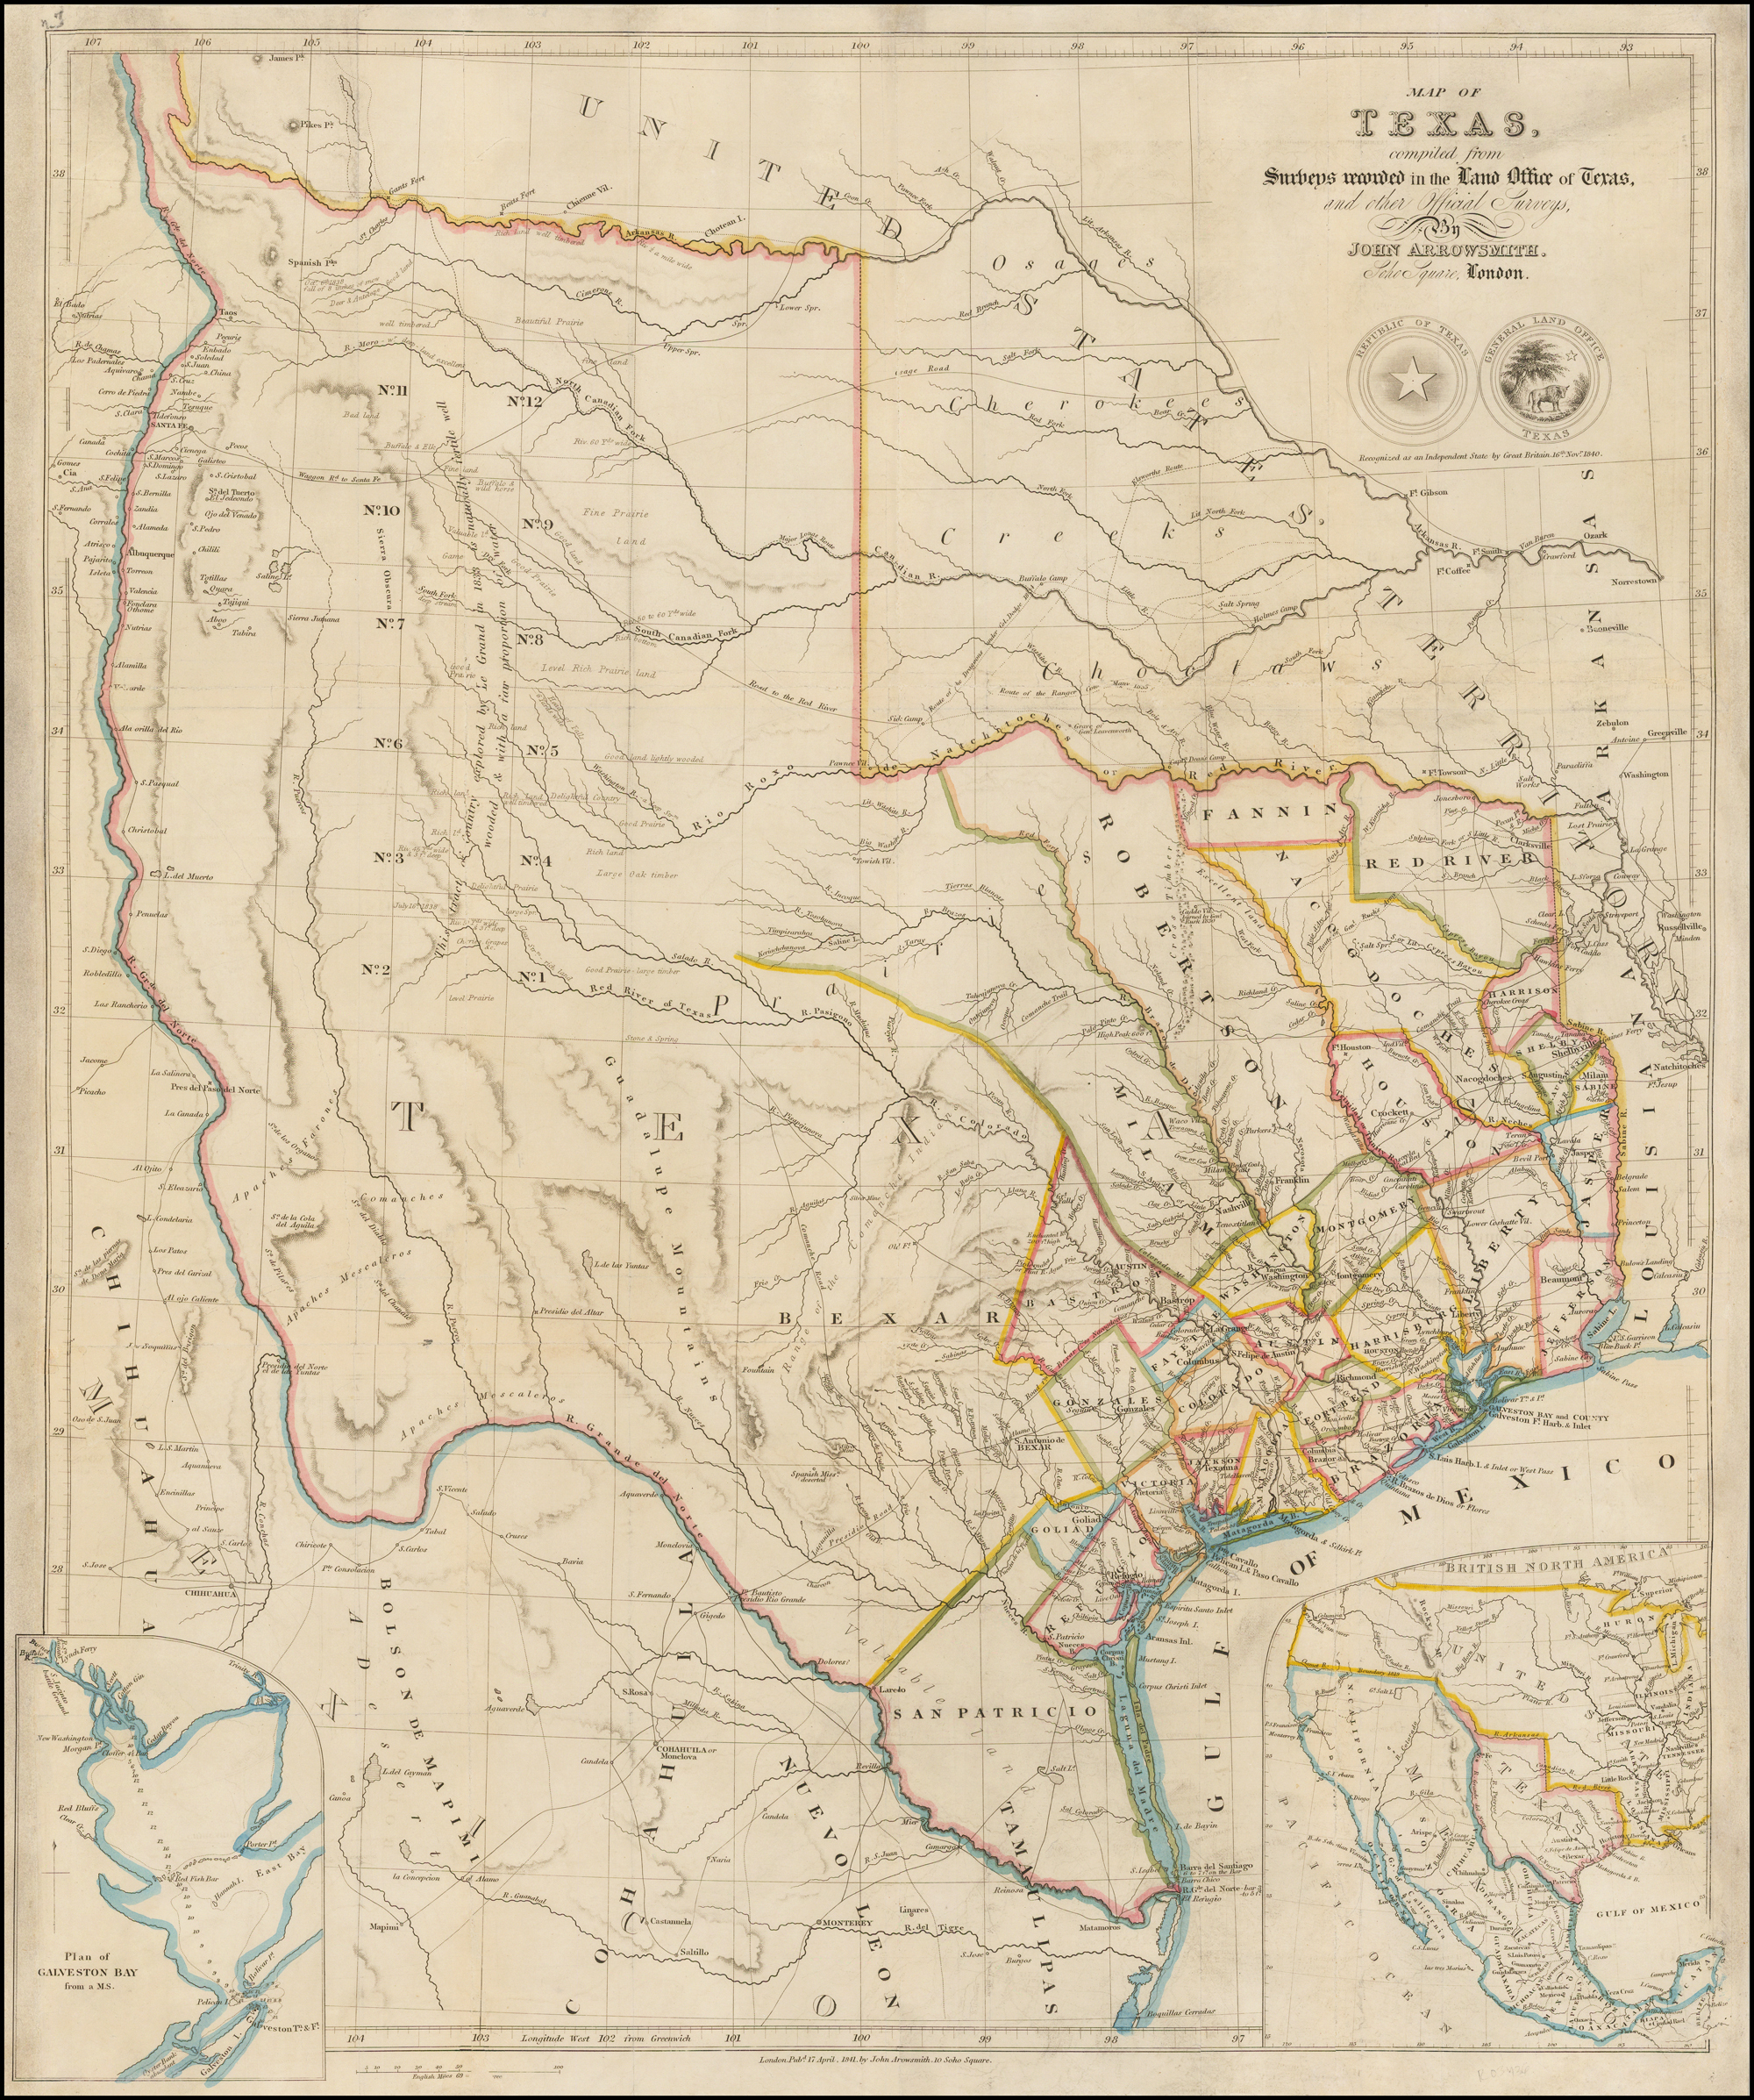 A Map Of Texas, Compiled From Surveys Recorded In The Land Office Of - Texas Land Office Maps